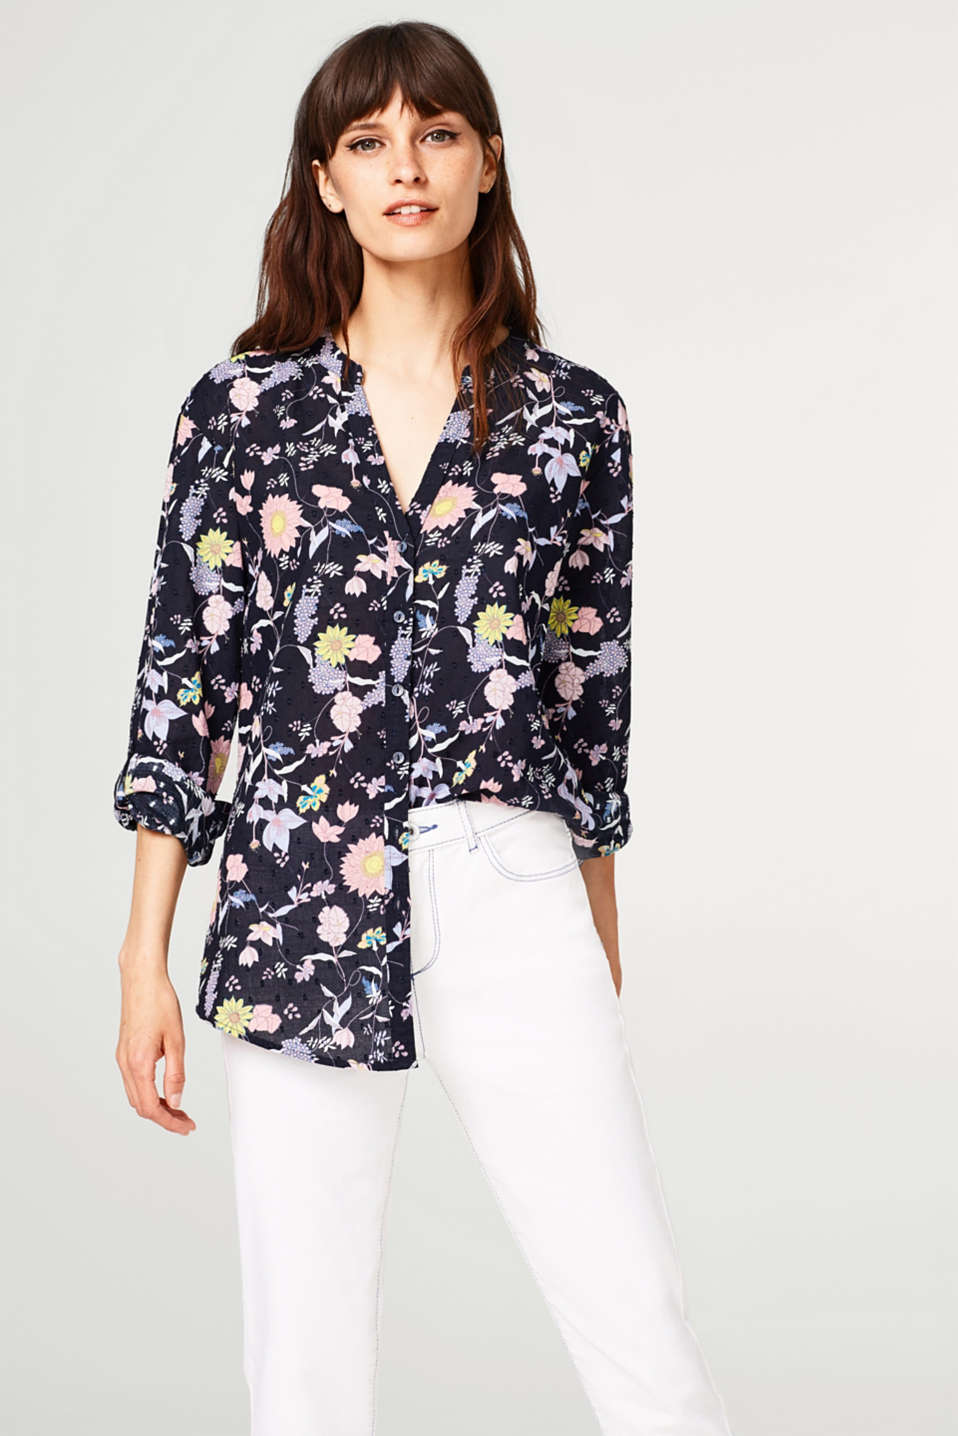 edc - Lightweight turn-up blouse with a floral print